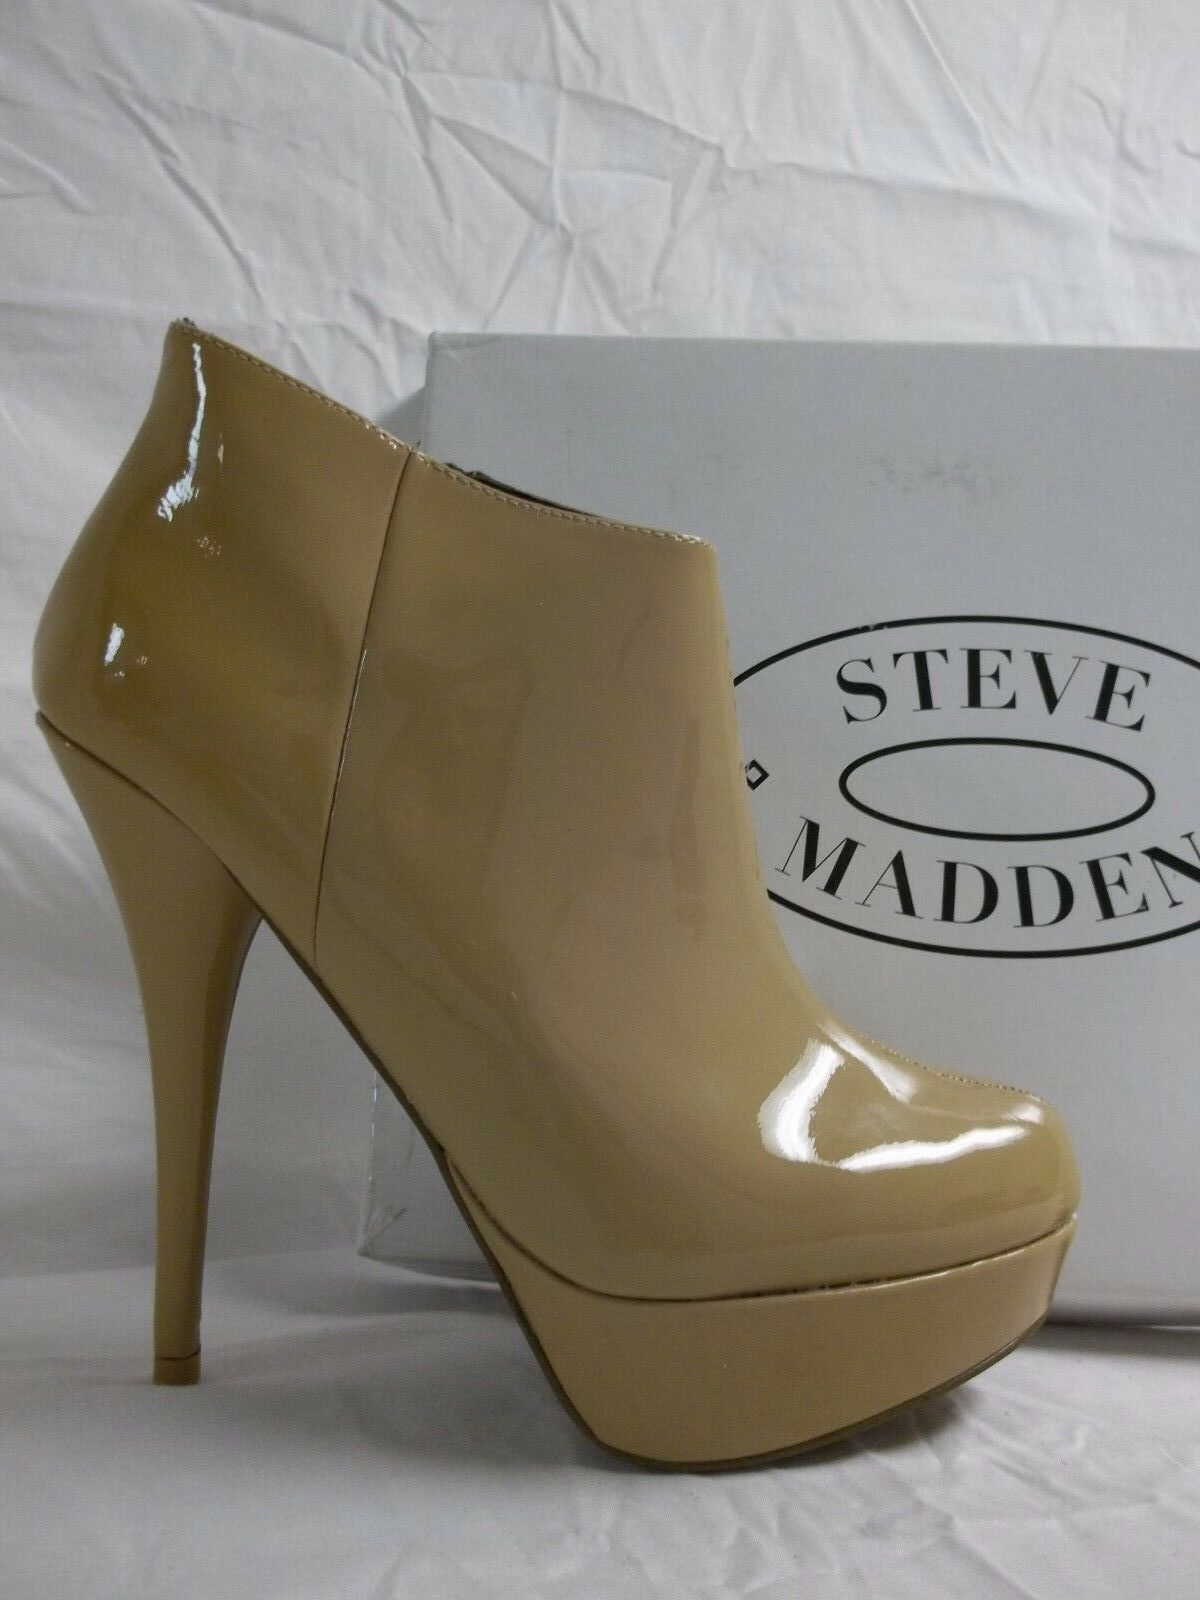 Steve Madden Size 9.5 M Chelseey Blush Patent Leather Booties Shoes New Donna